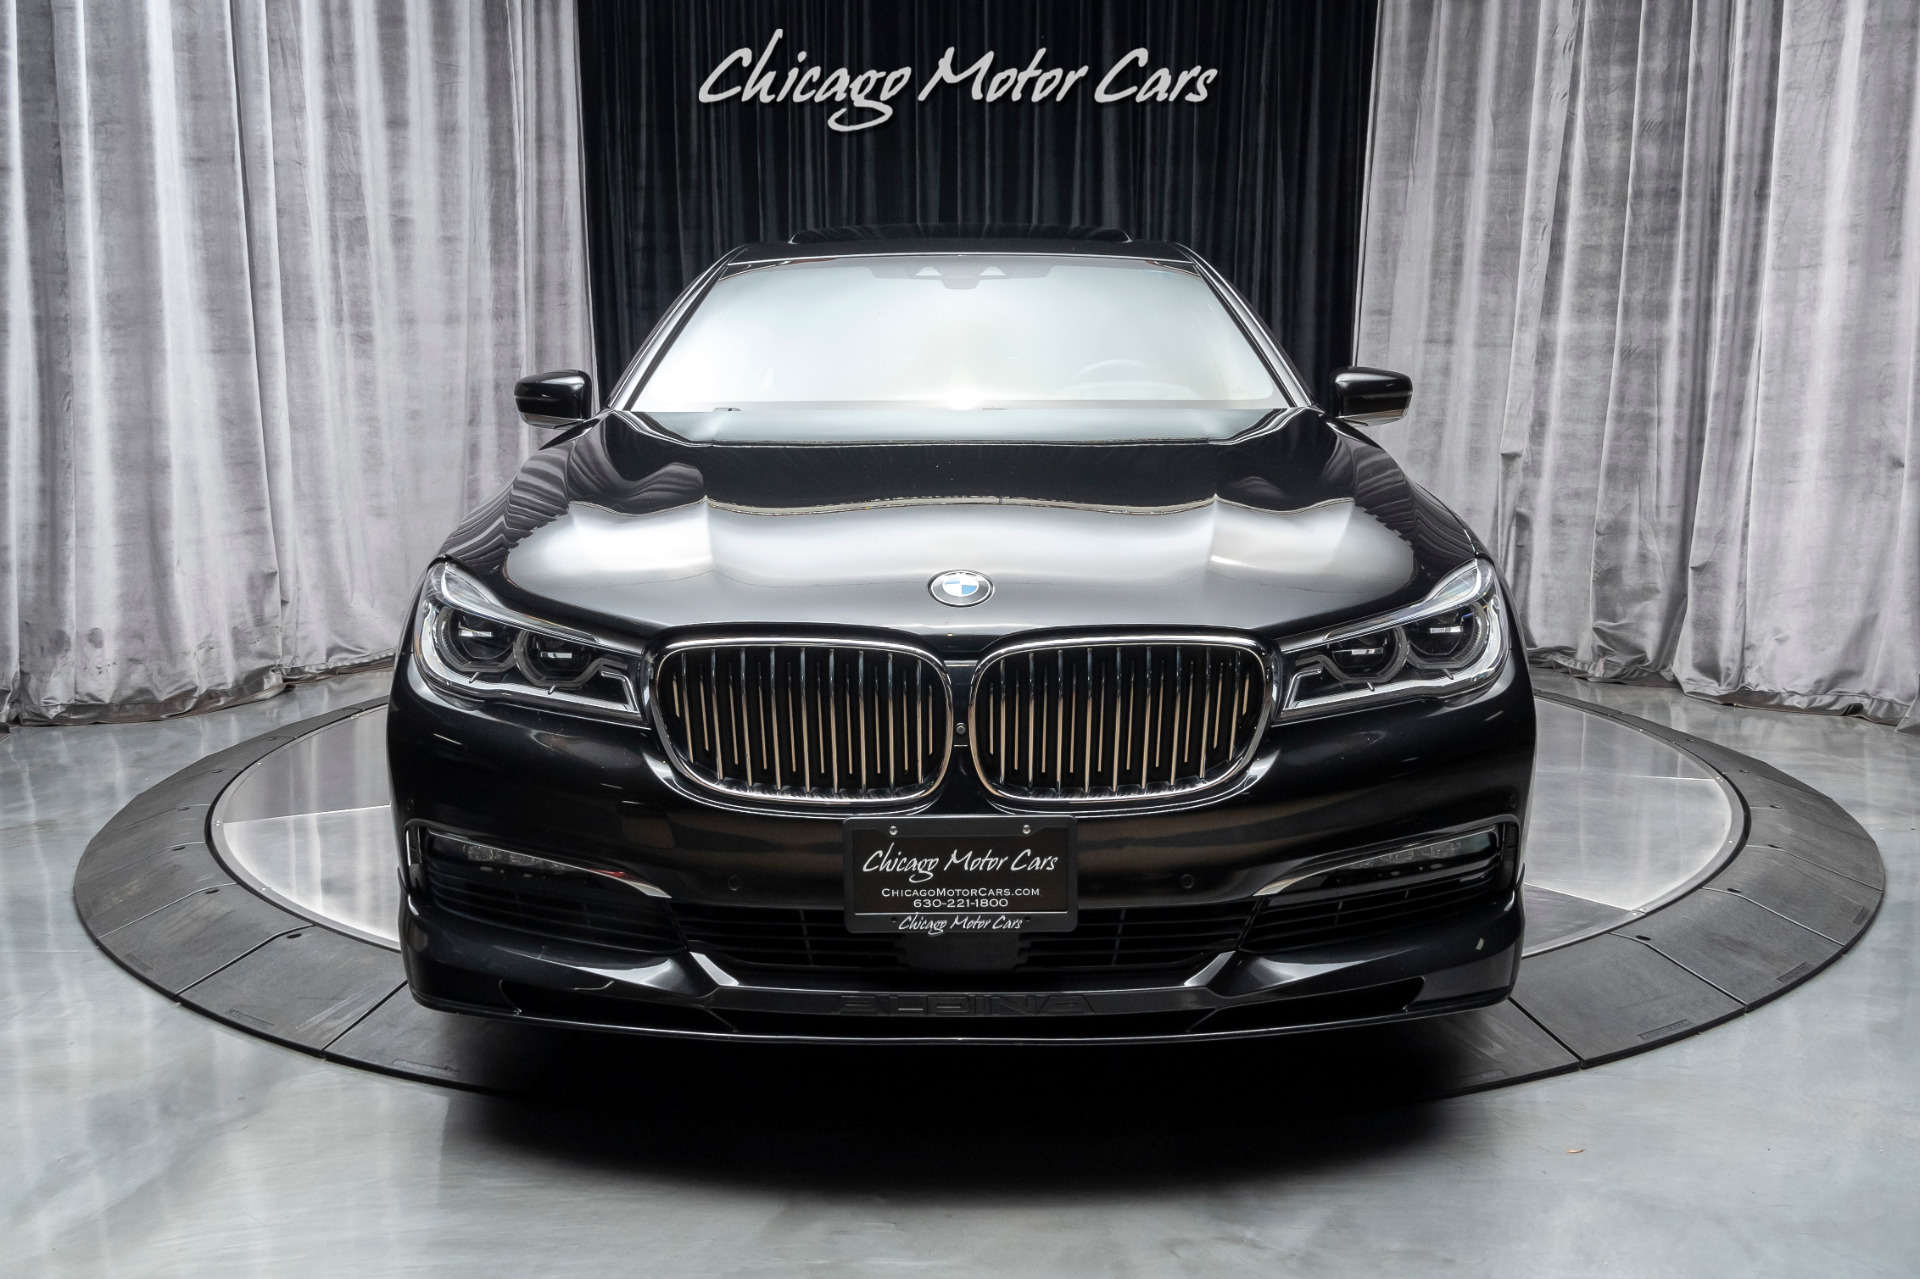 Used 2017 Bmw Alpina B7 Xdrive 151k Msrp Luxury Rear Seating Pkg For Sale Special Pricing Chicago Motor Cars Stock 17293